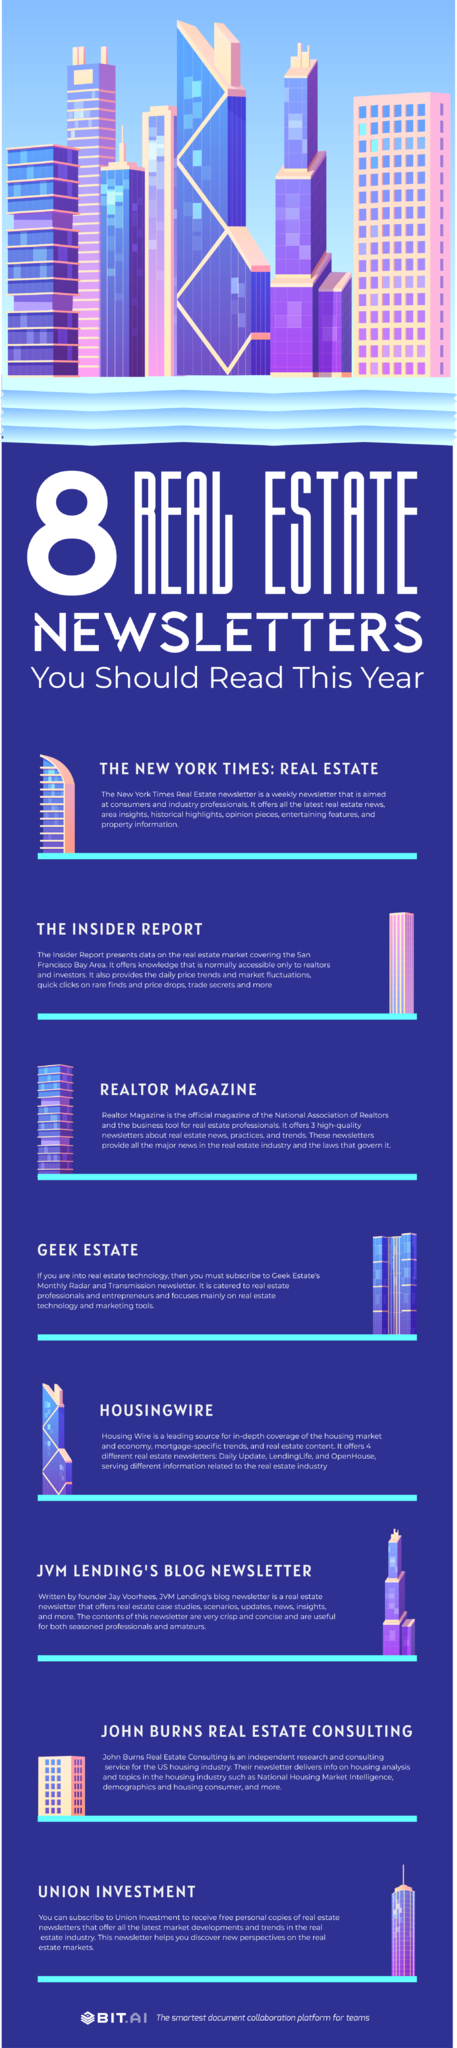 Real estate newsletter infographic